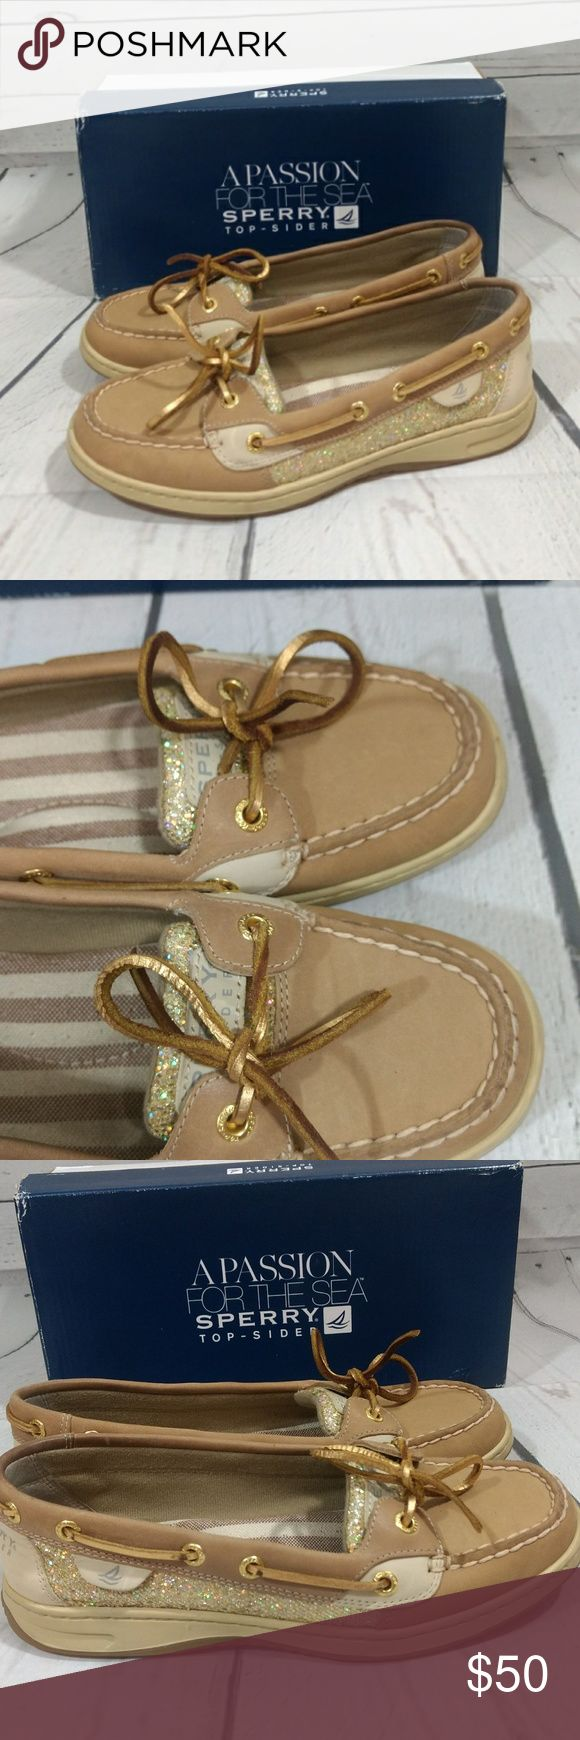 Sperry TopSider Angelfish Multi Gold Khaki Glitter New with box, but please note slight defect around the back of the shoes as shown. These were a store display.   Women's Sperry, Angelfish Signature Bluefish Styling but with a Feminine Twist Genuine Handsewn Construction Padded Tongue Stain and Water Resistant Leather is Durable and long lasting Sperry Shoes Flats & Loafers